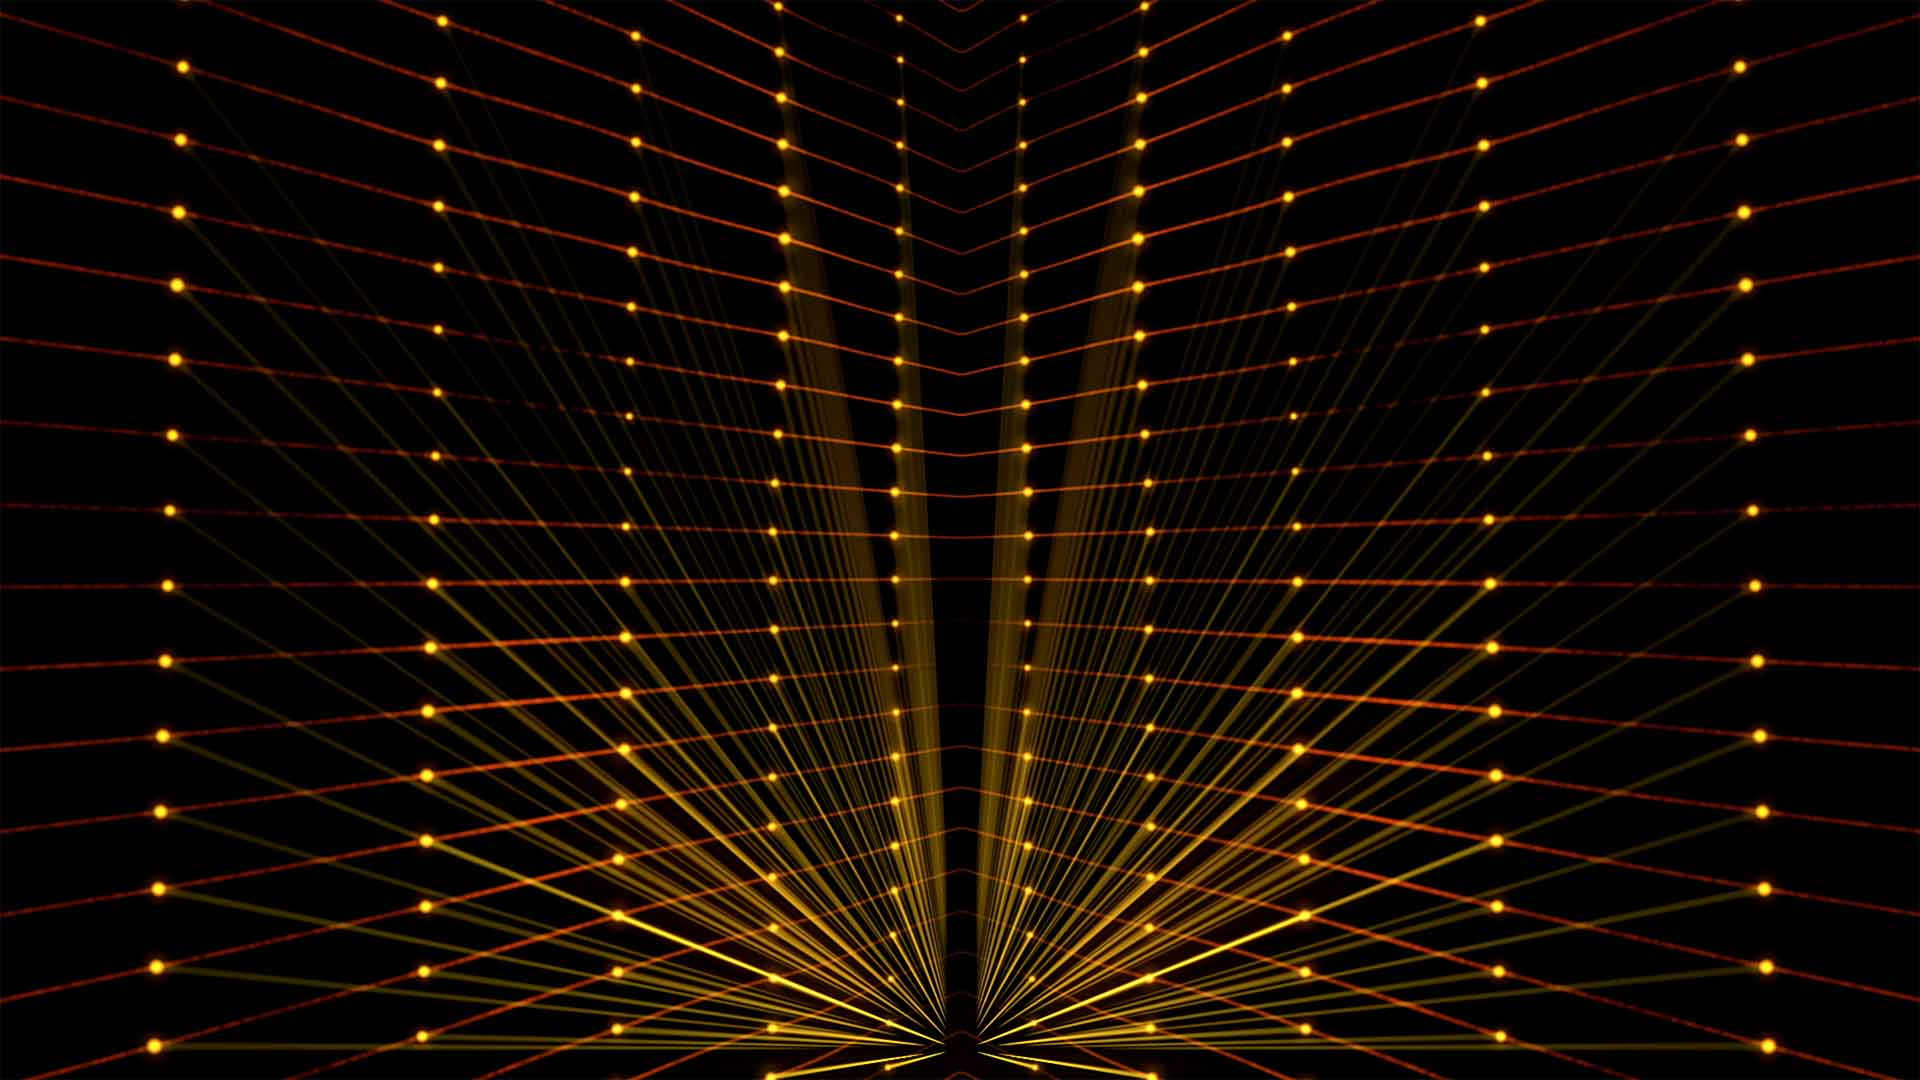 Sun portal space video footage art vj loop